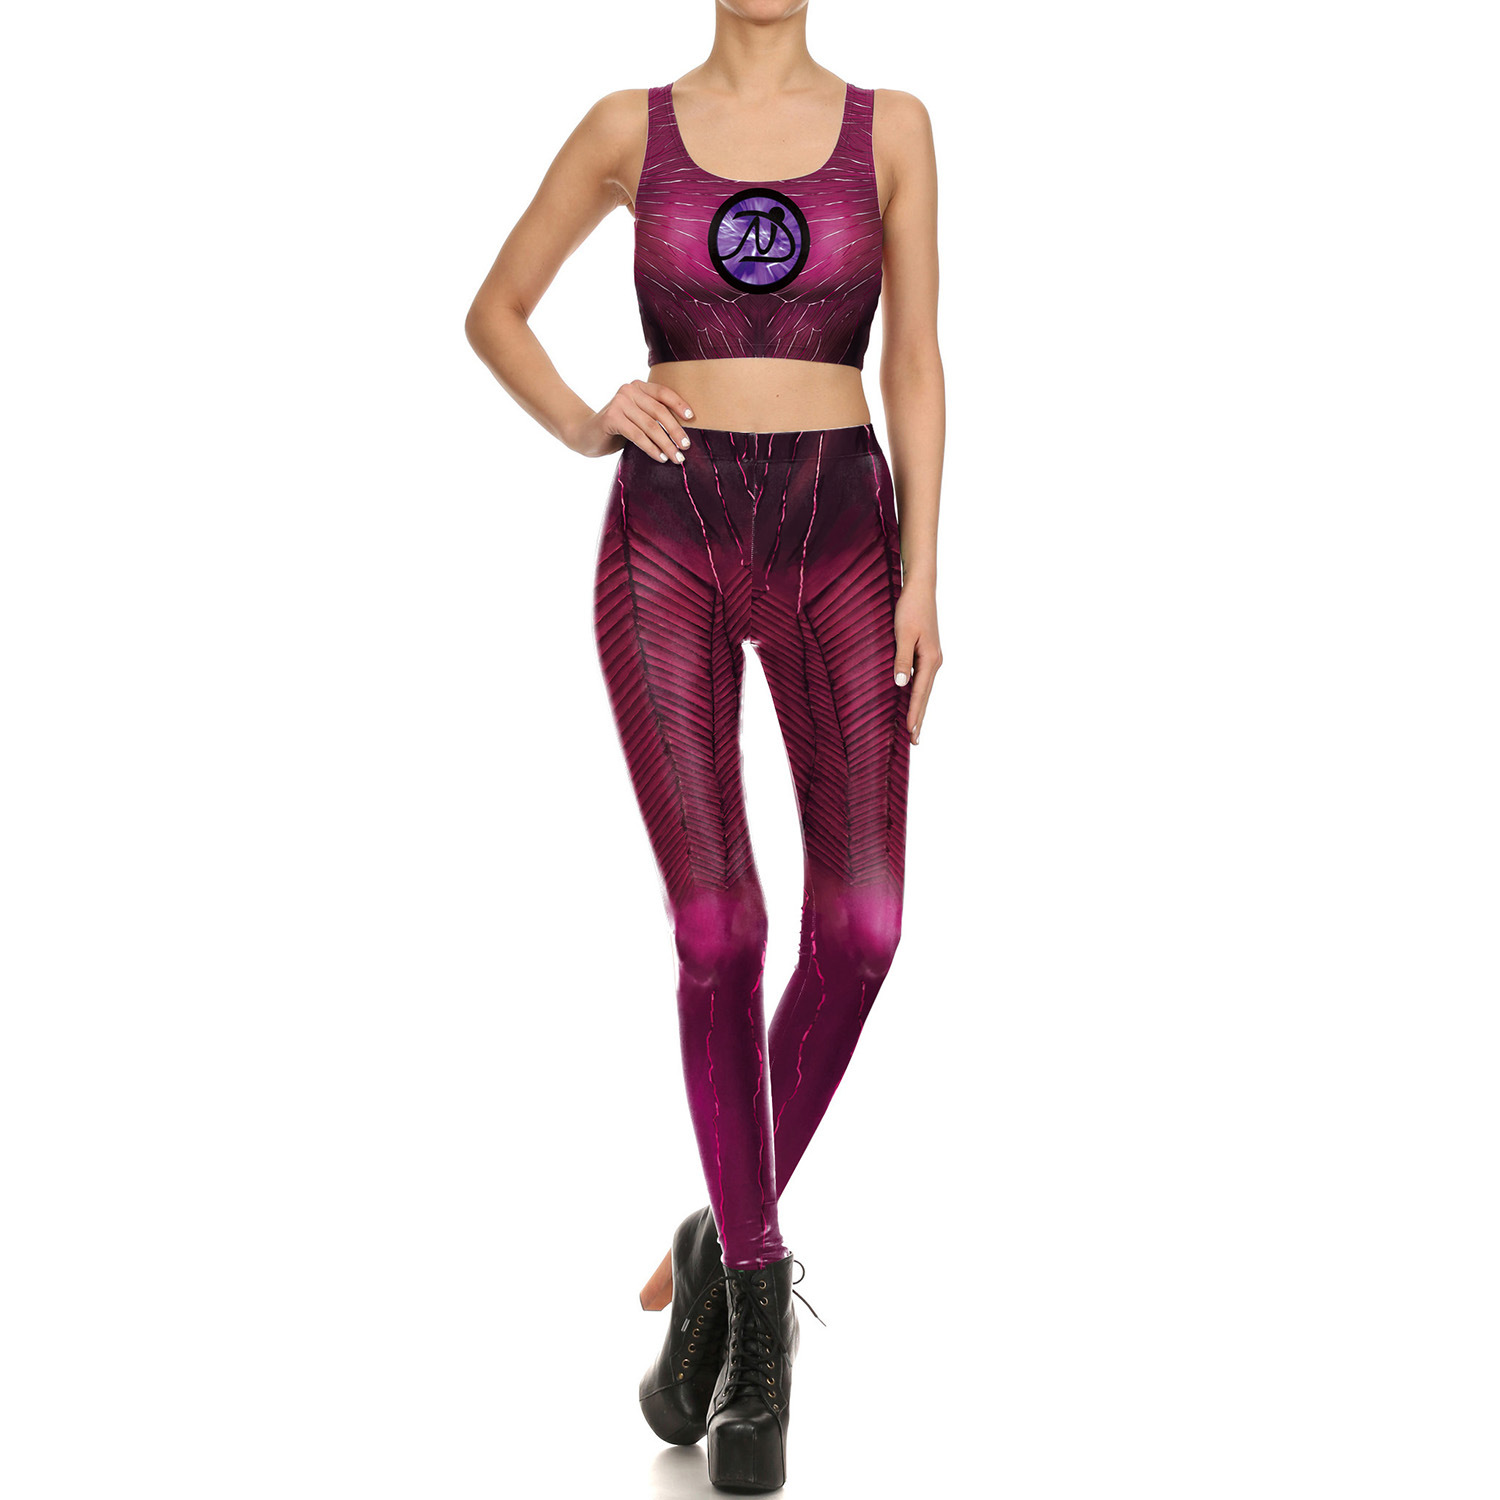 2019 New Style Europe And America-Style 3D Printed Elasticity Leggings Character Play Digital Printing Vest Leisure Suit